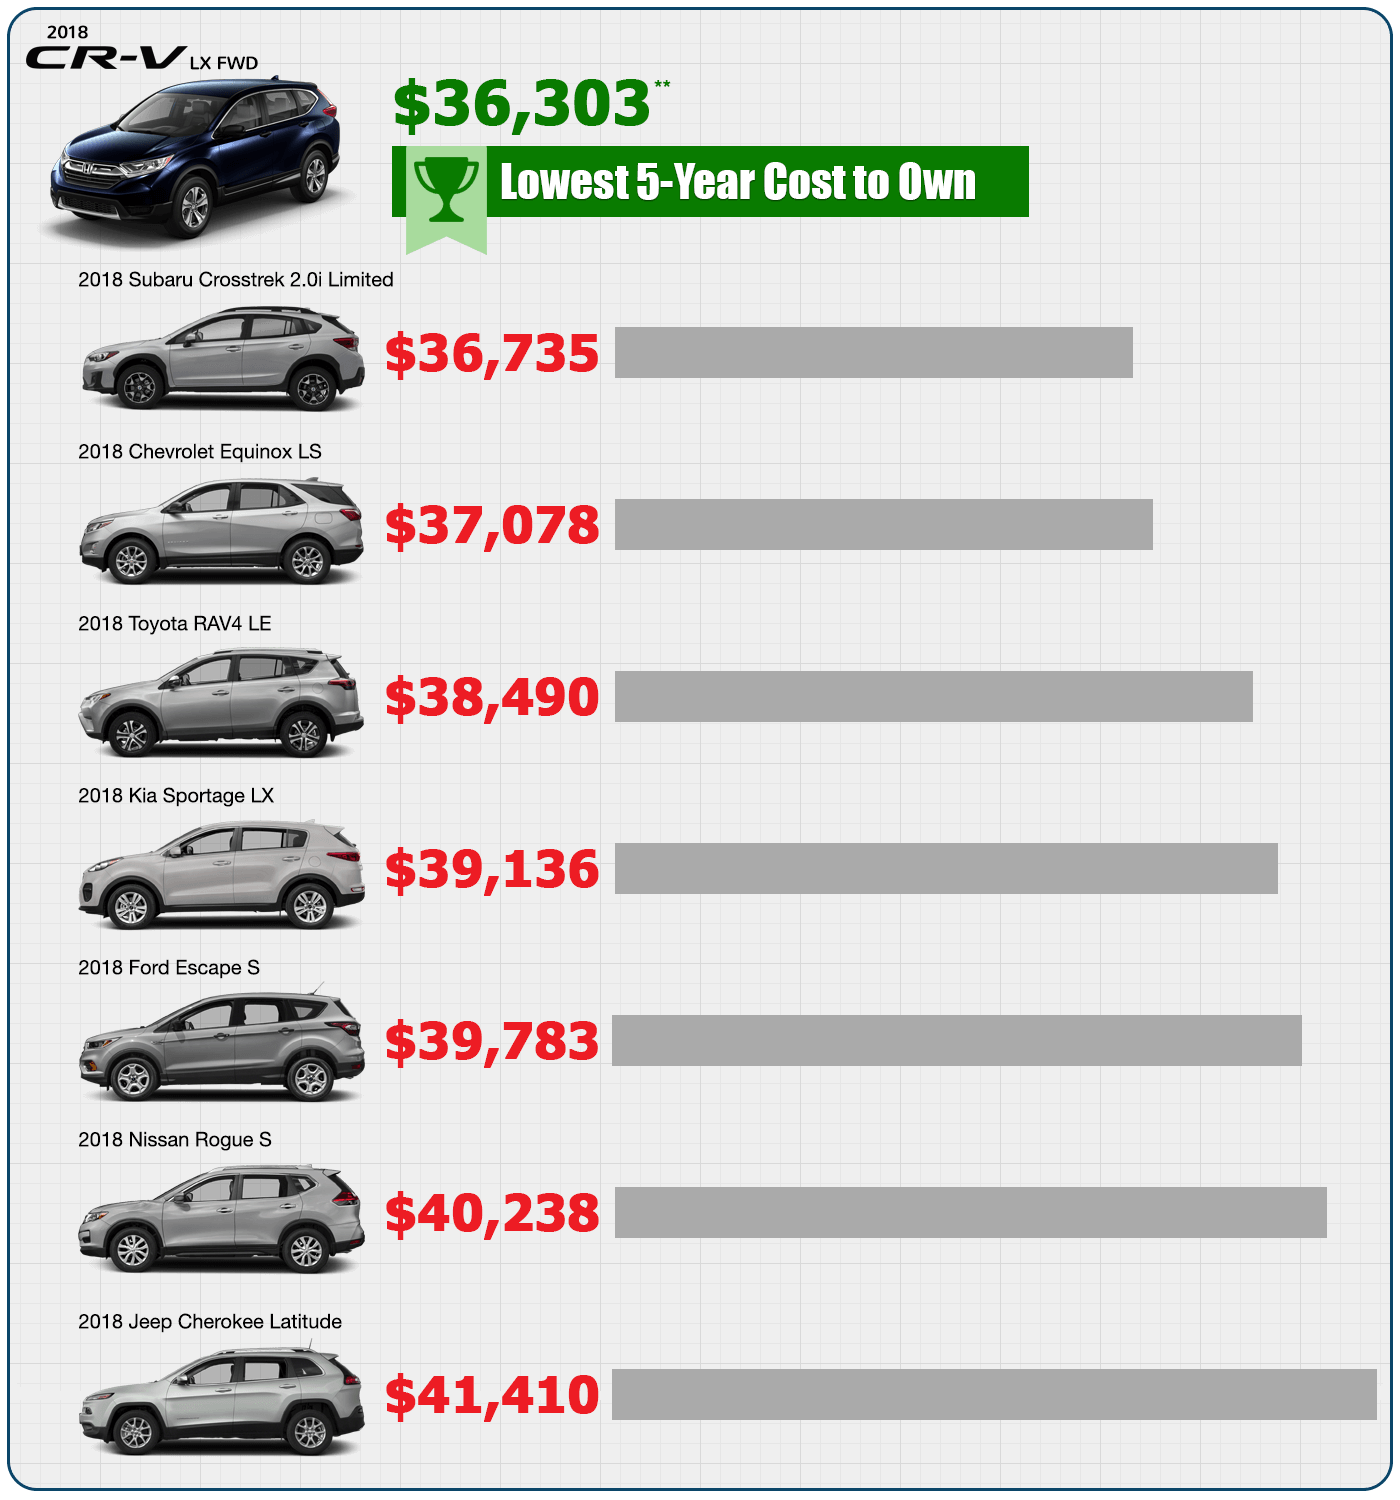 CR-V 2018 KBB.com Lowest 5-Year Cost to Own in Central Michigan